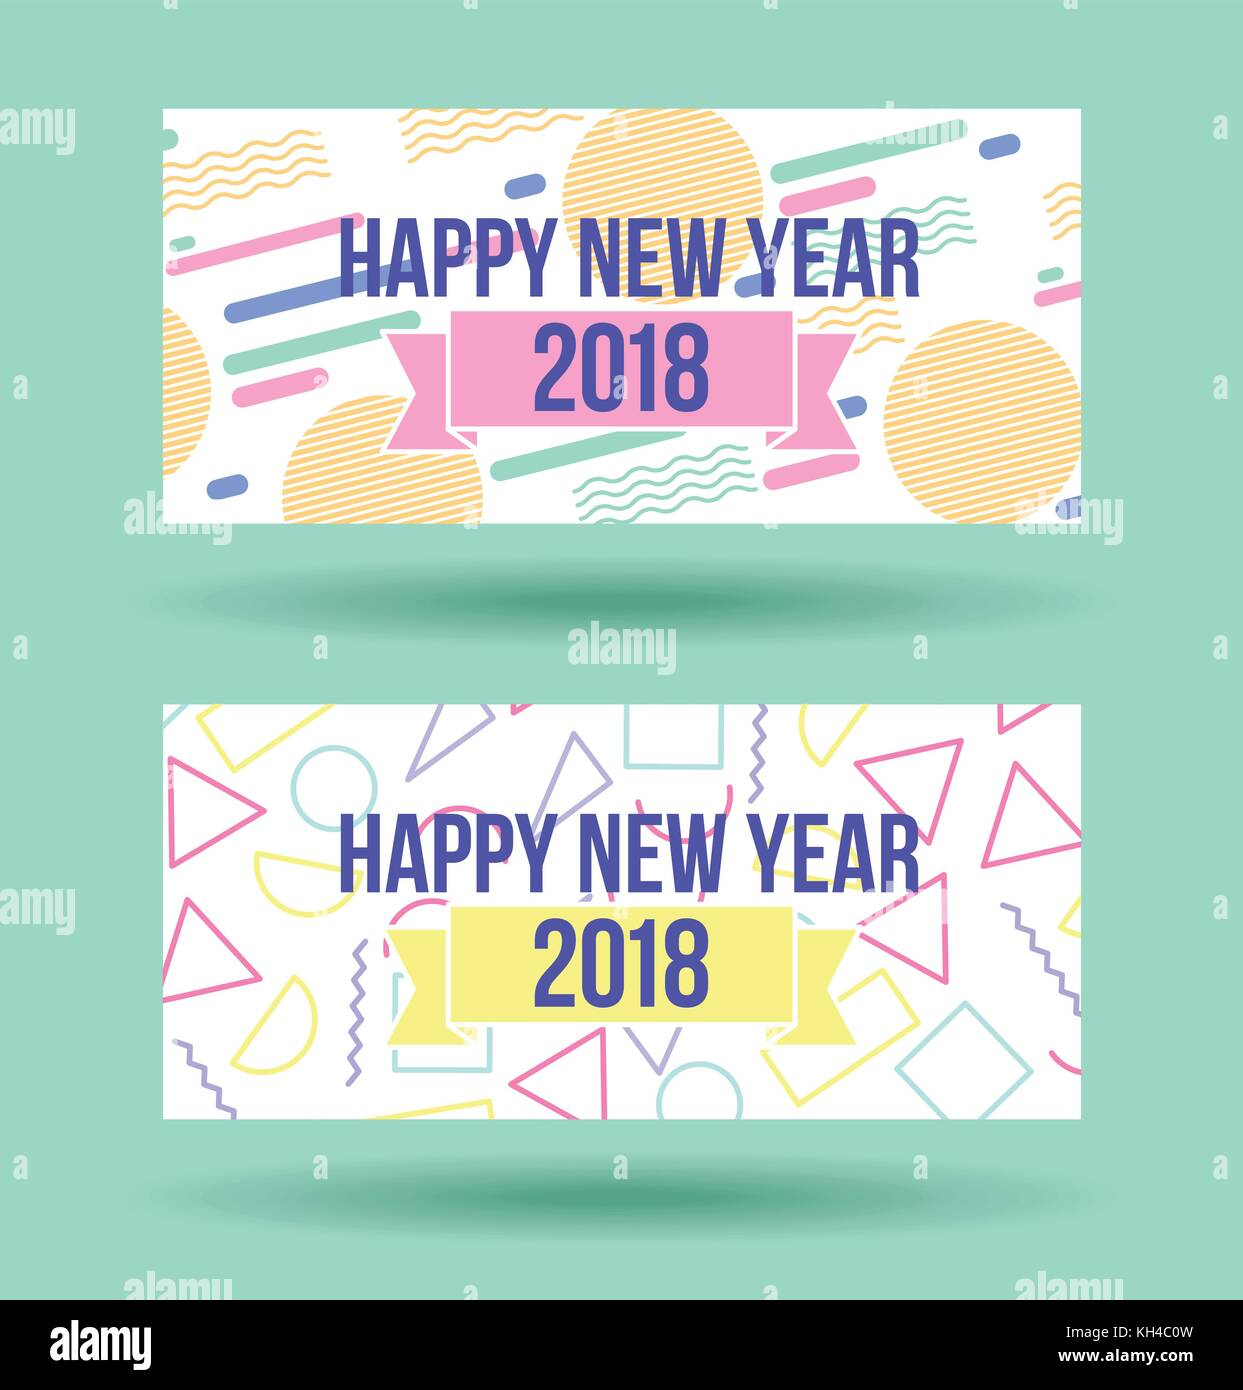 happy new year 2018 card greeting celebration party - Stock Vector